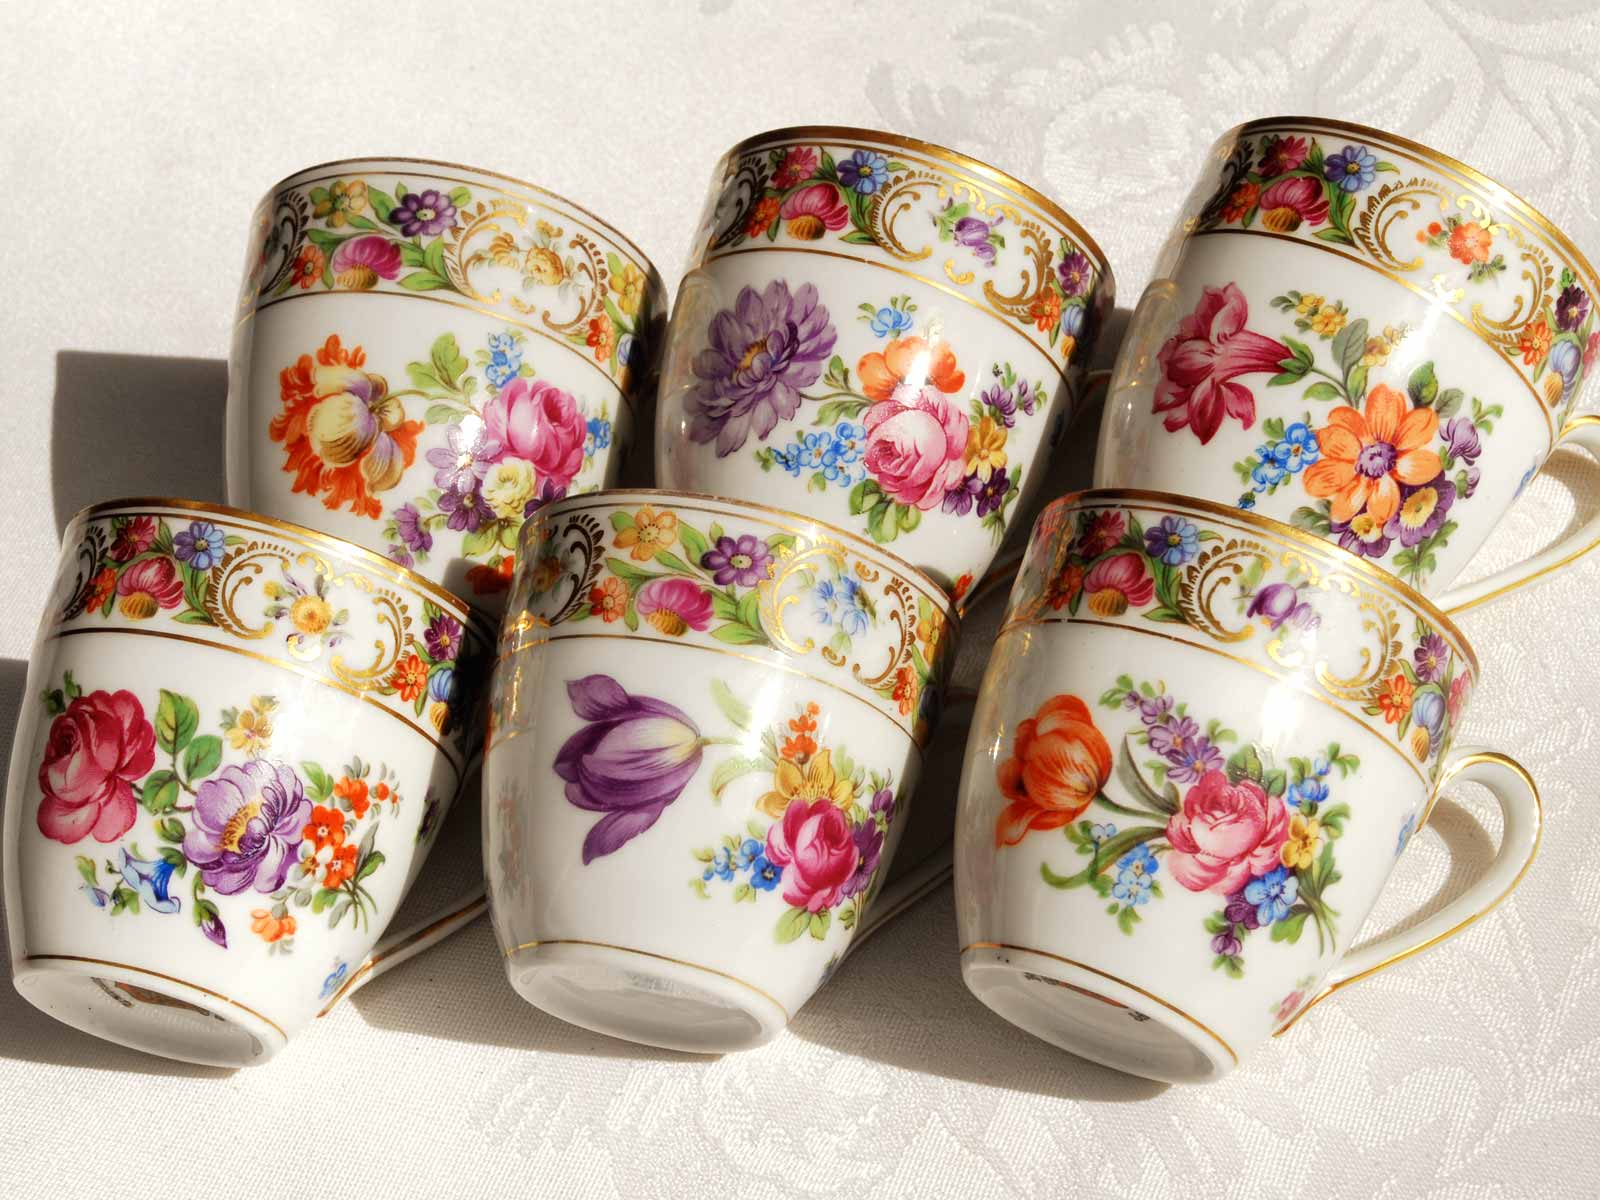 Schumann Bavaria Teacup designs